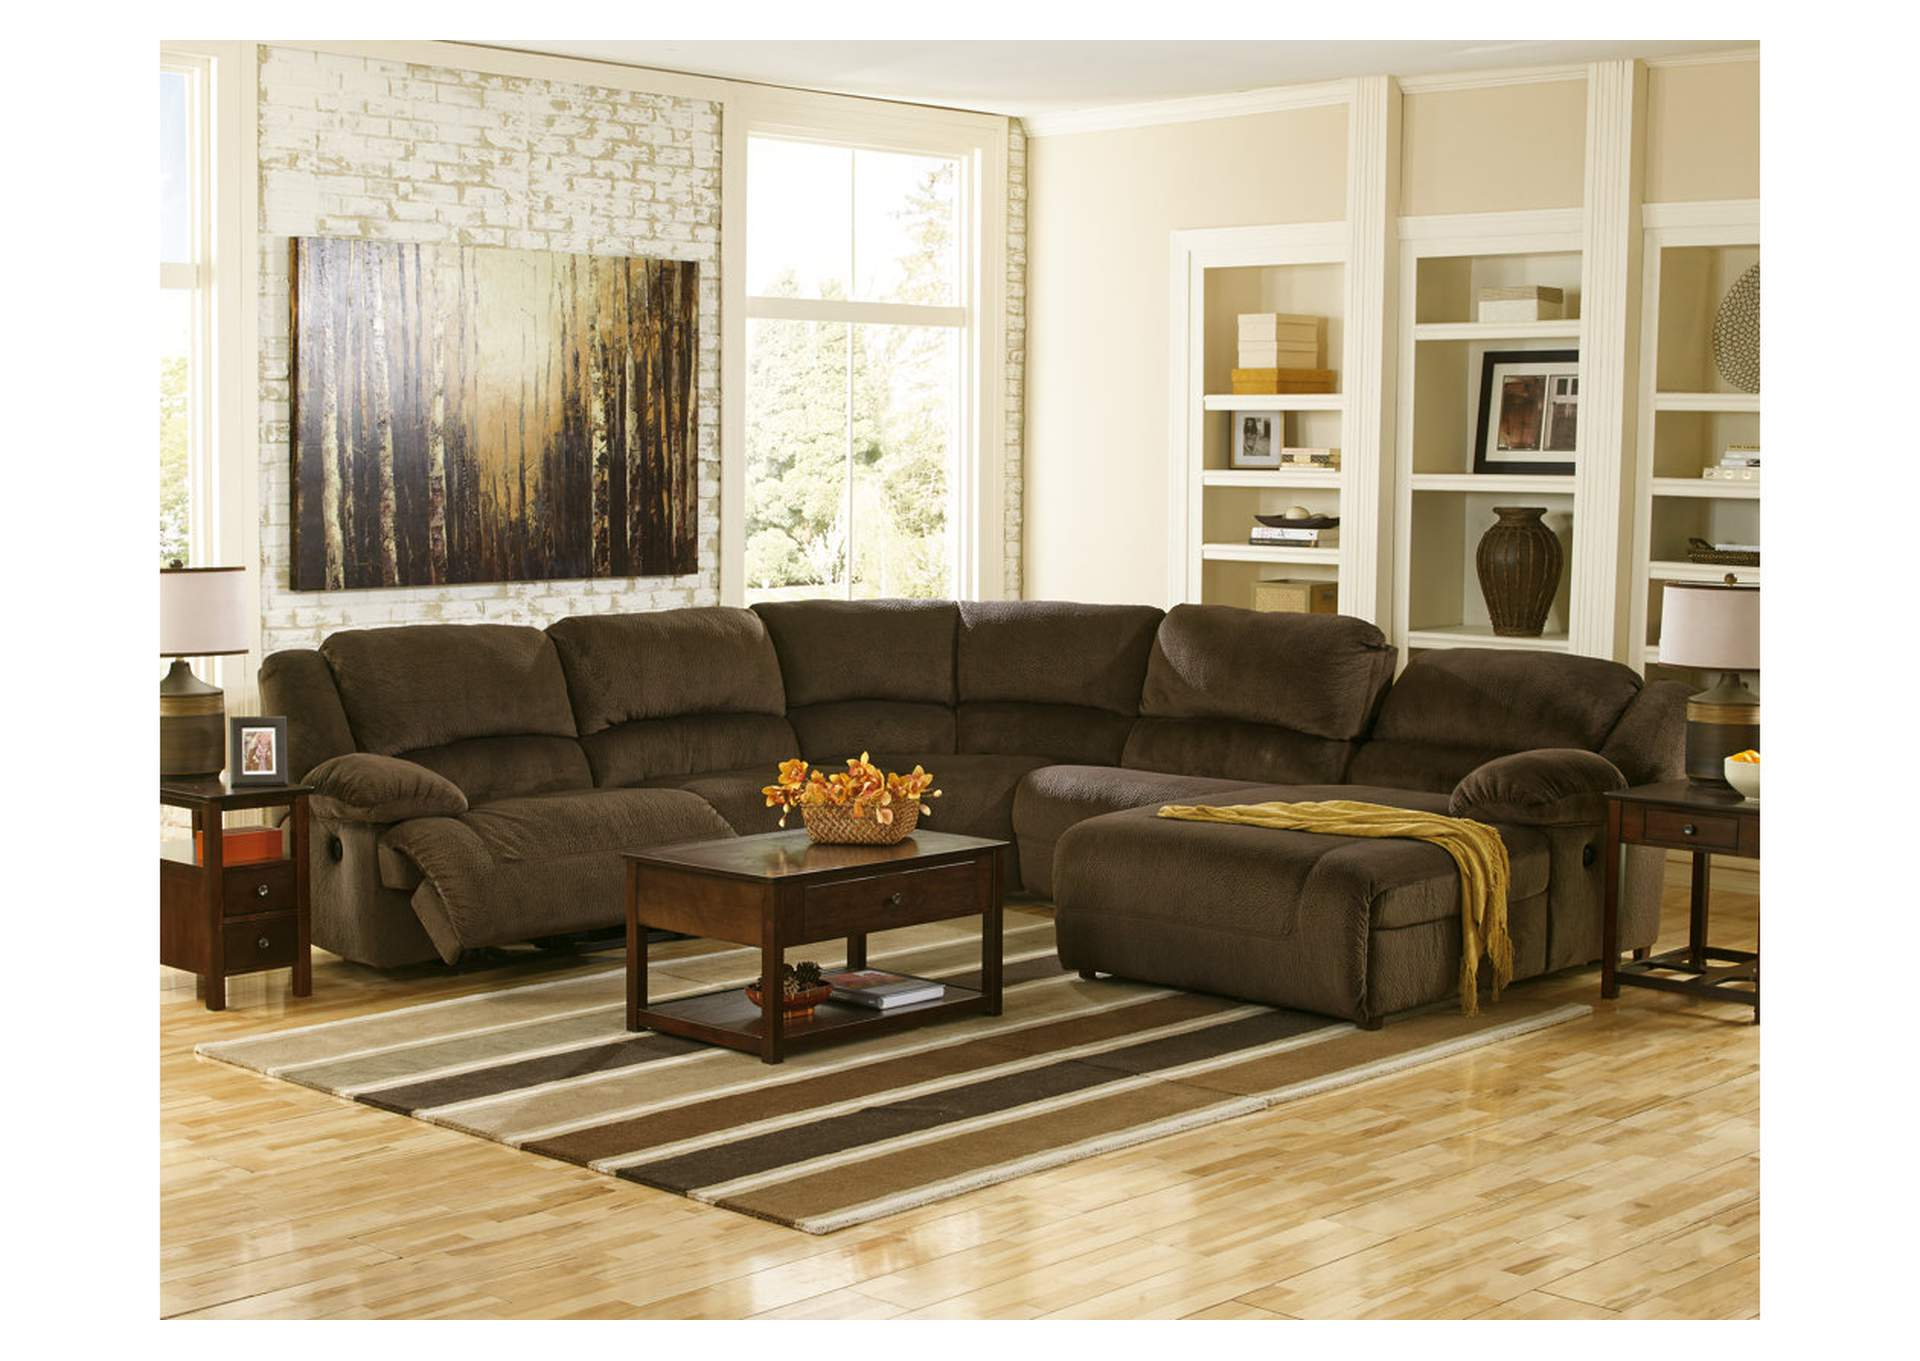 Toletta Chocolate Right Facing Chaise End Reclining Sectional,Signature Design by Ashley